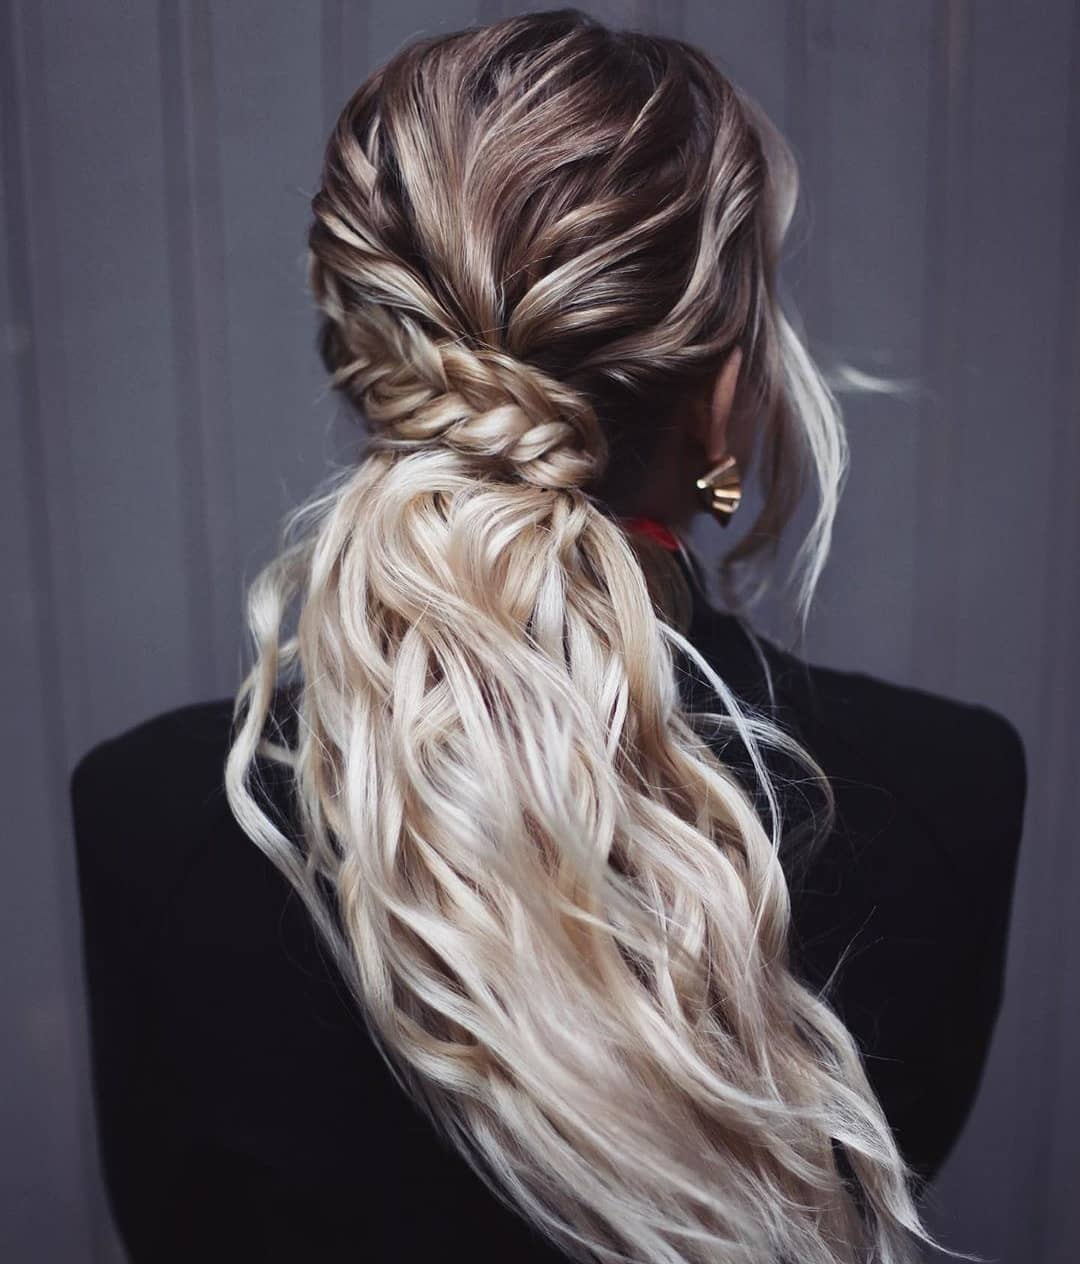 10 Cute Braided Hairstyles For Women & Girl